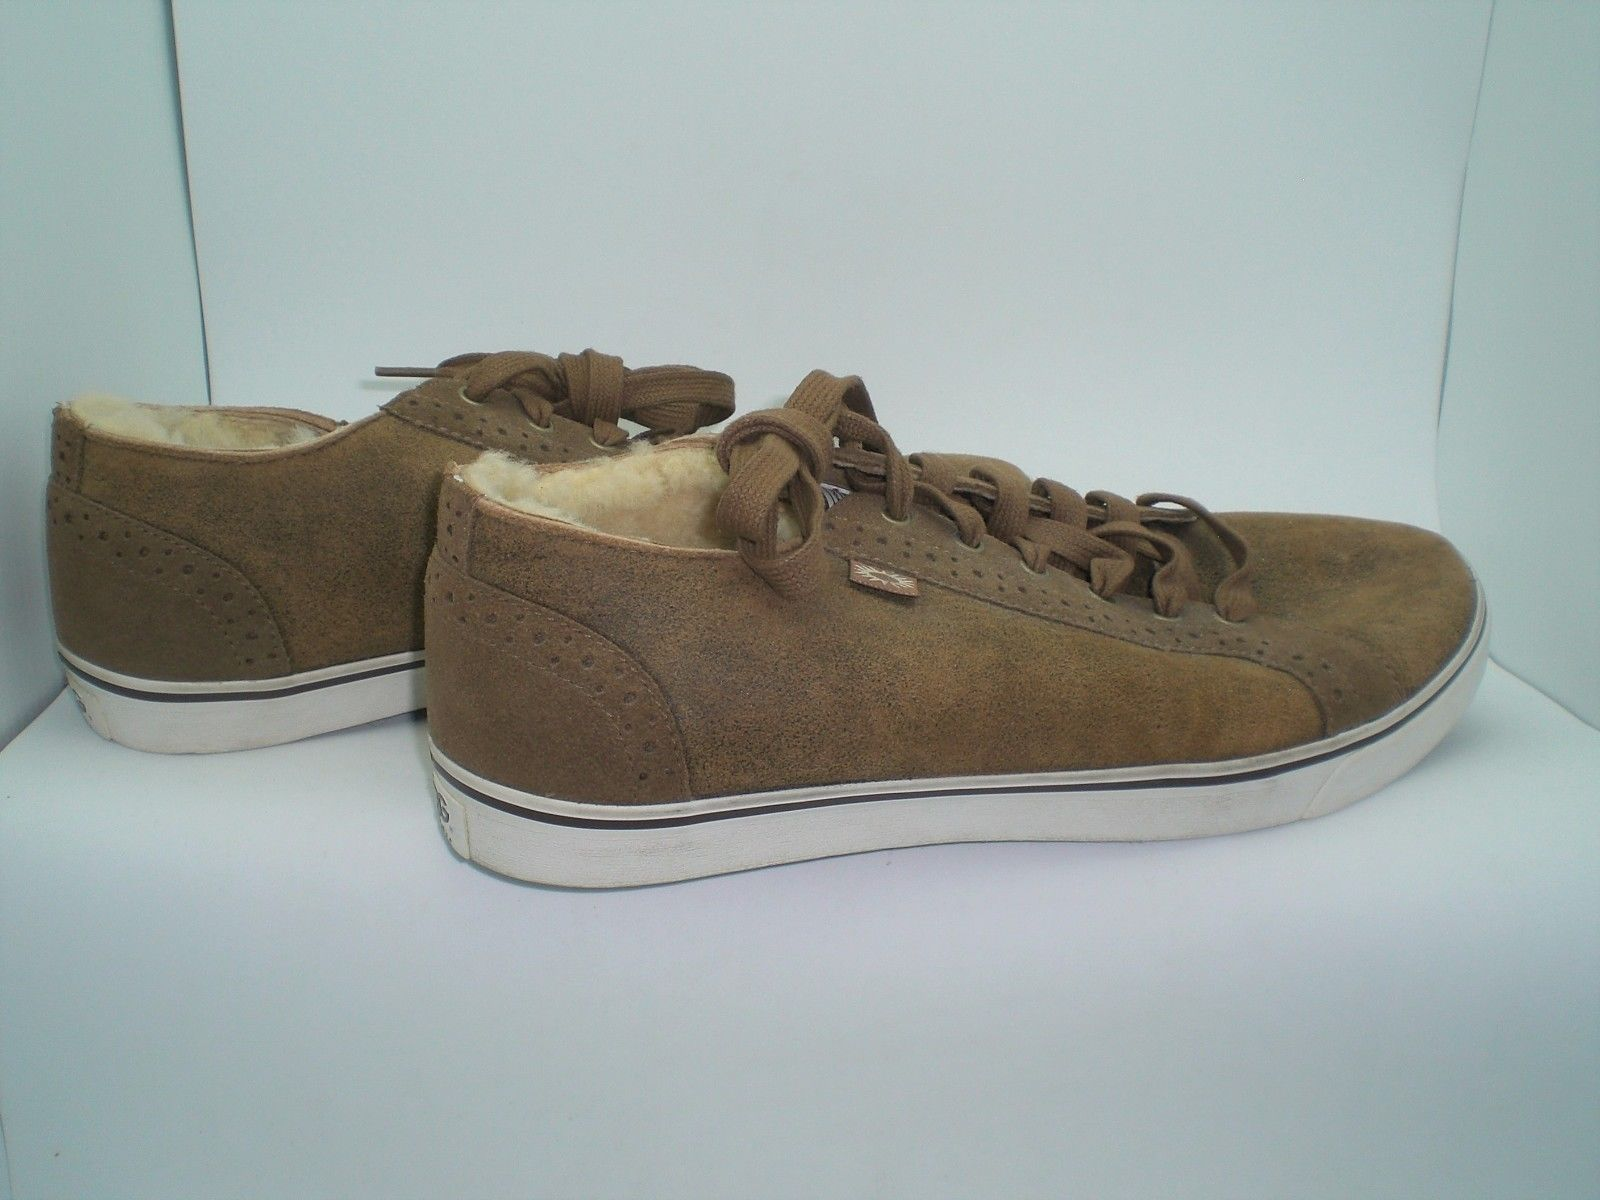 3efa4eff606 Ugg Roxford Mens Shoes Brown Suede Size 12 and similar items